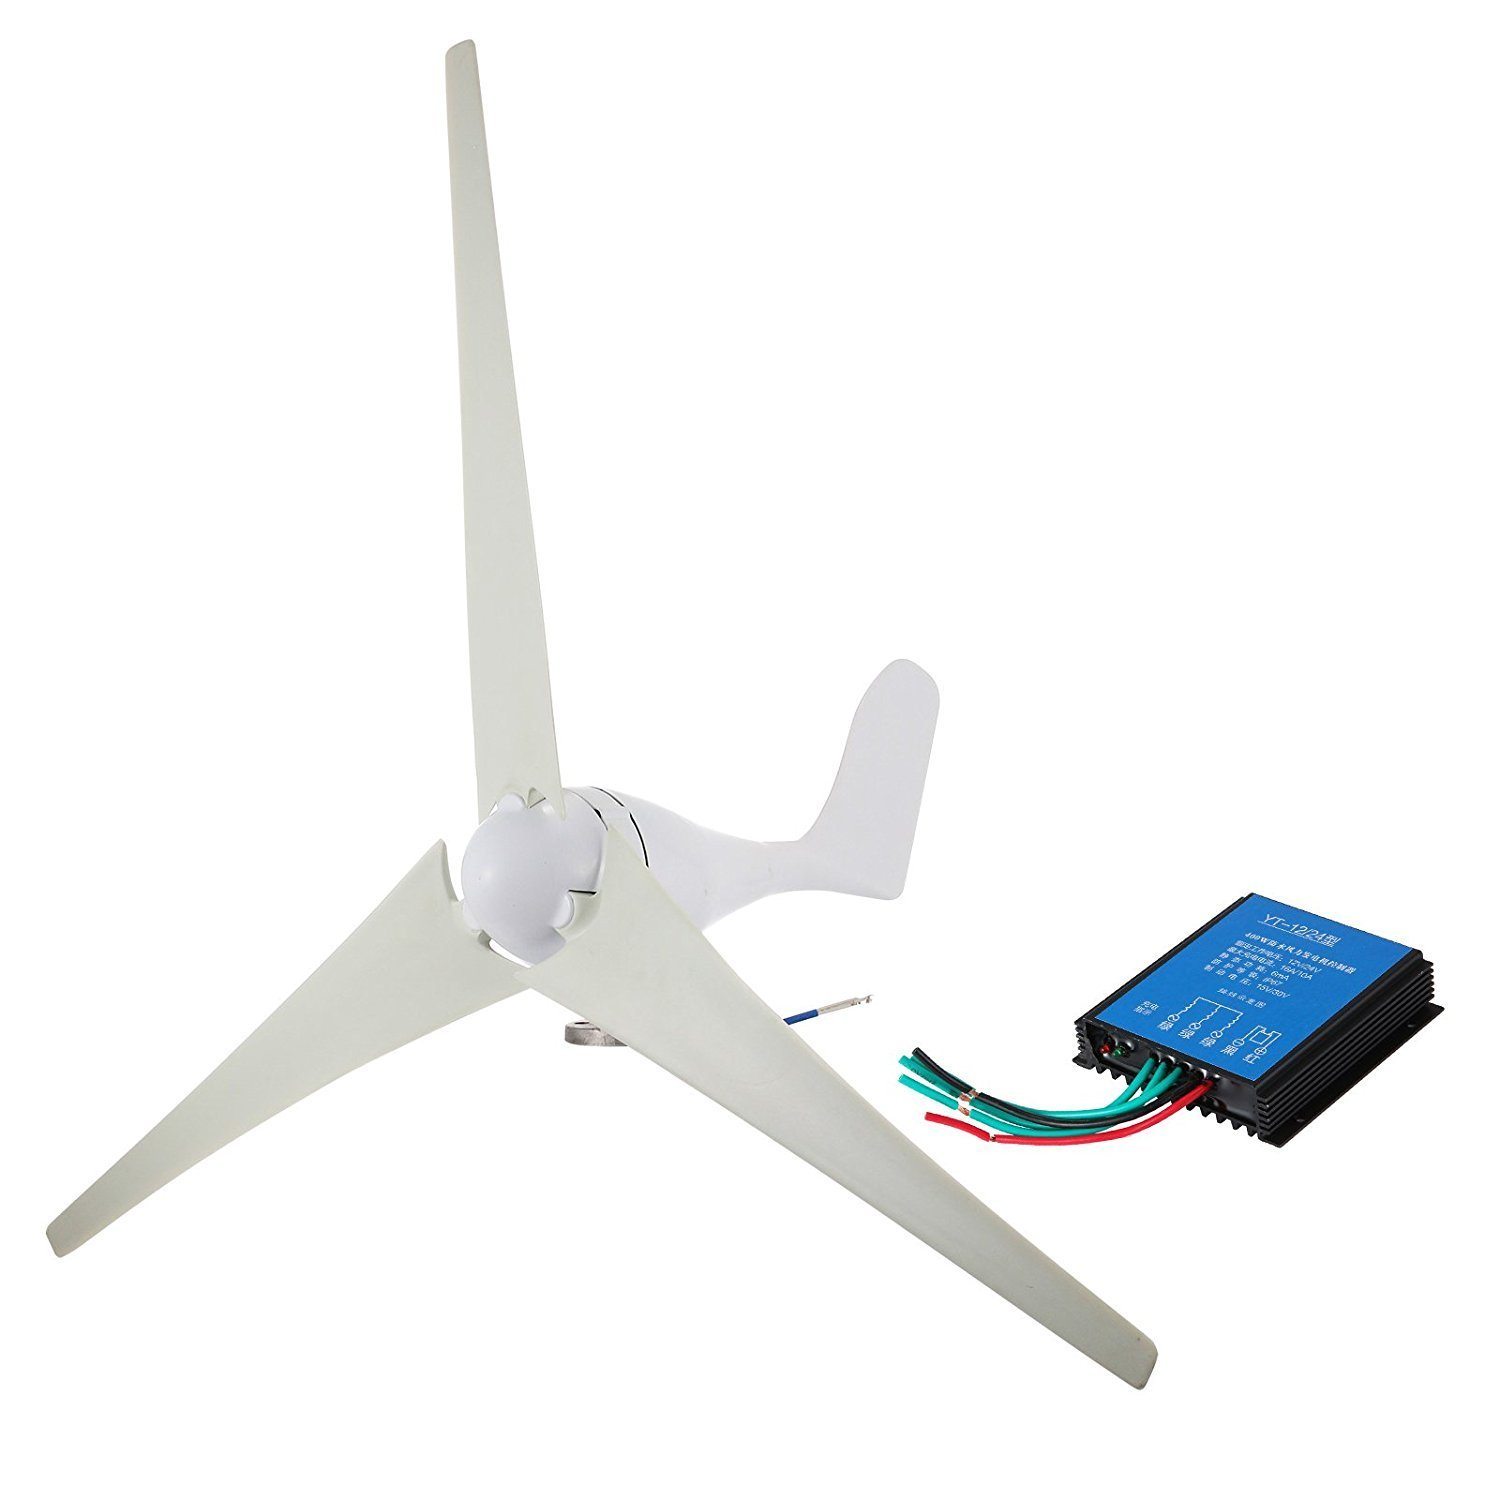 Mophorn Wind Turbine 400W Hybrid Wind Generator DC 12V/24V Hybrid Controller Wind Turbine Generator 20A Hybrid Charge Controller Home Power (400W)